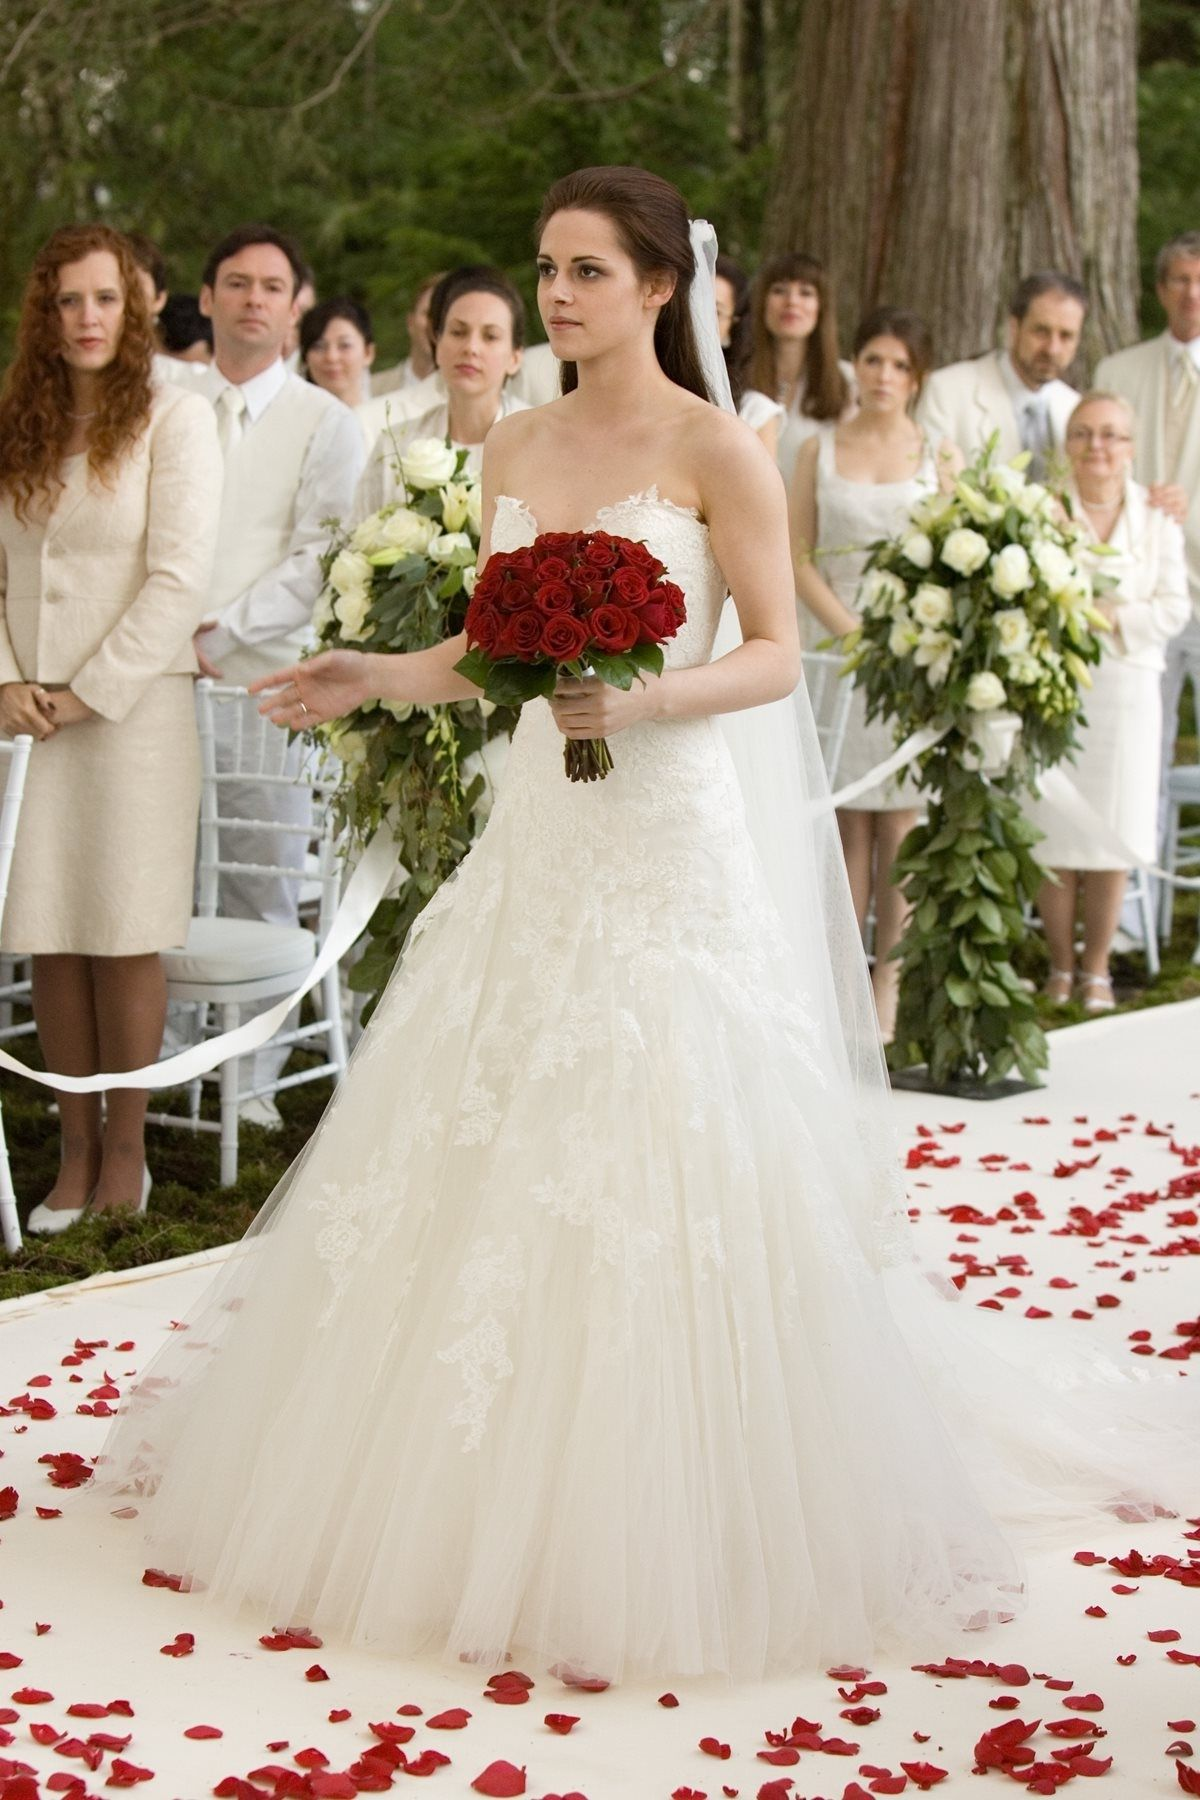 twighlight wedding: Bella Swan Wedding Dress In Her Dream